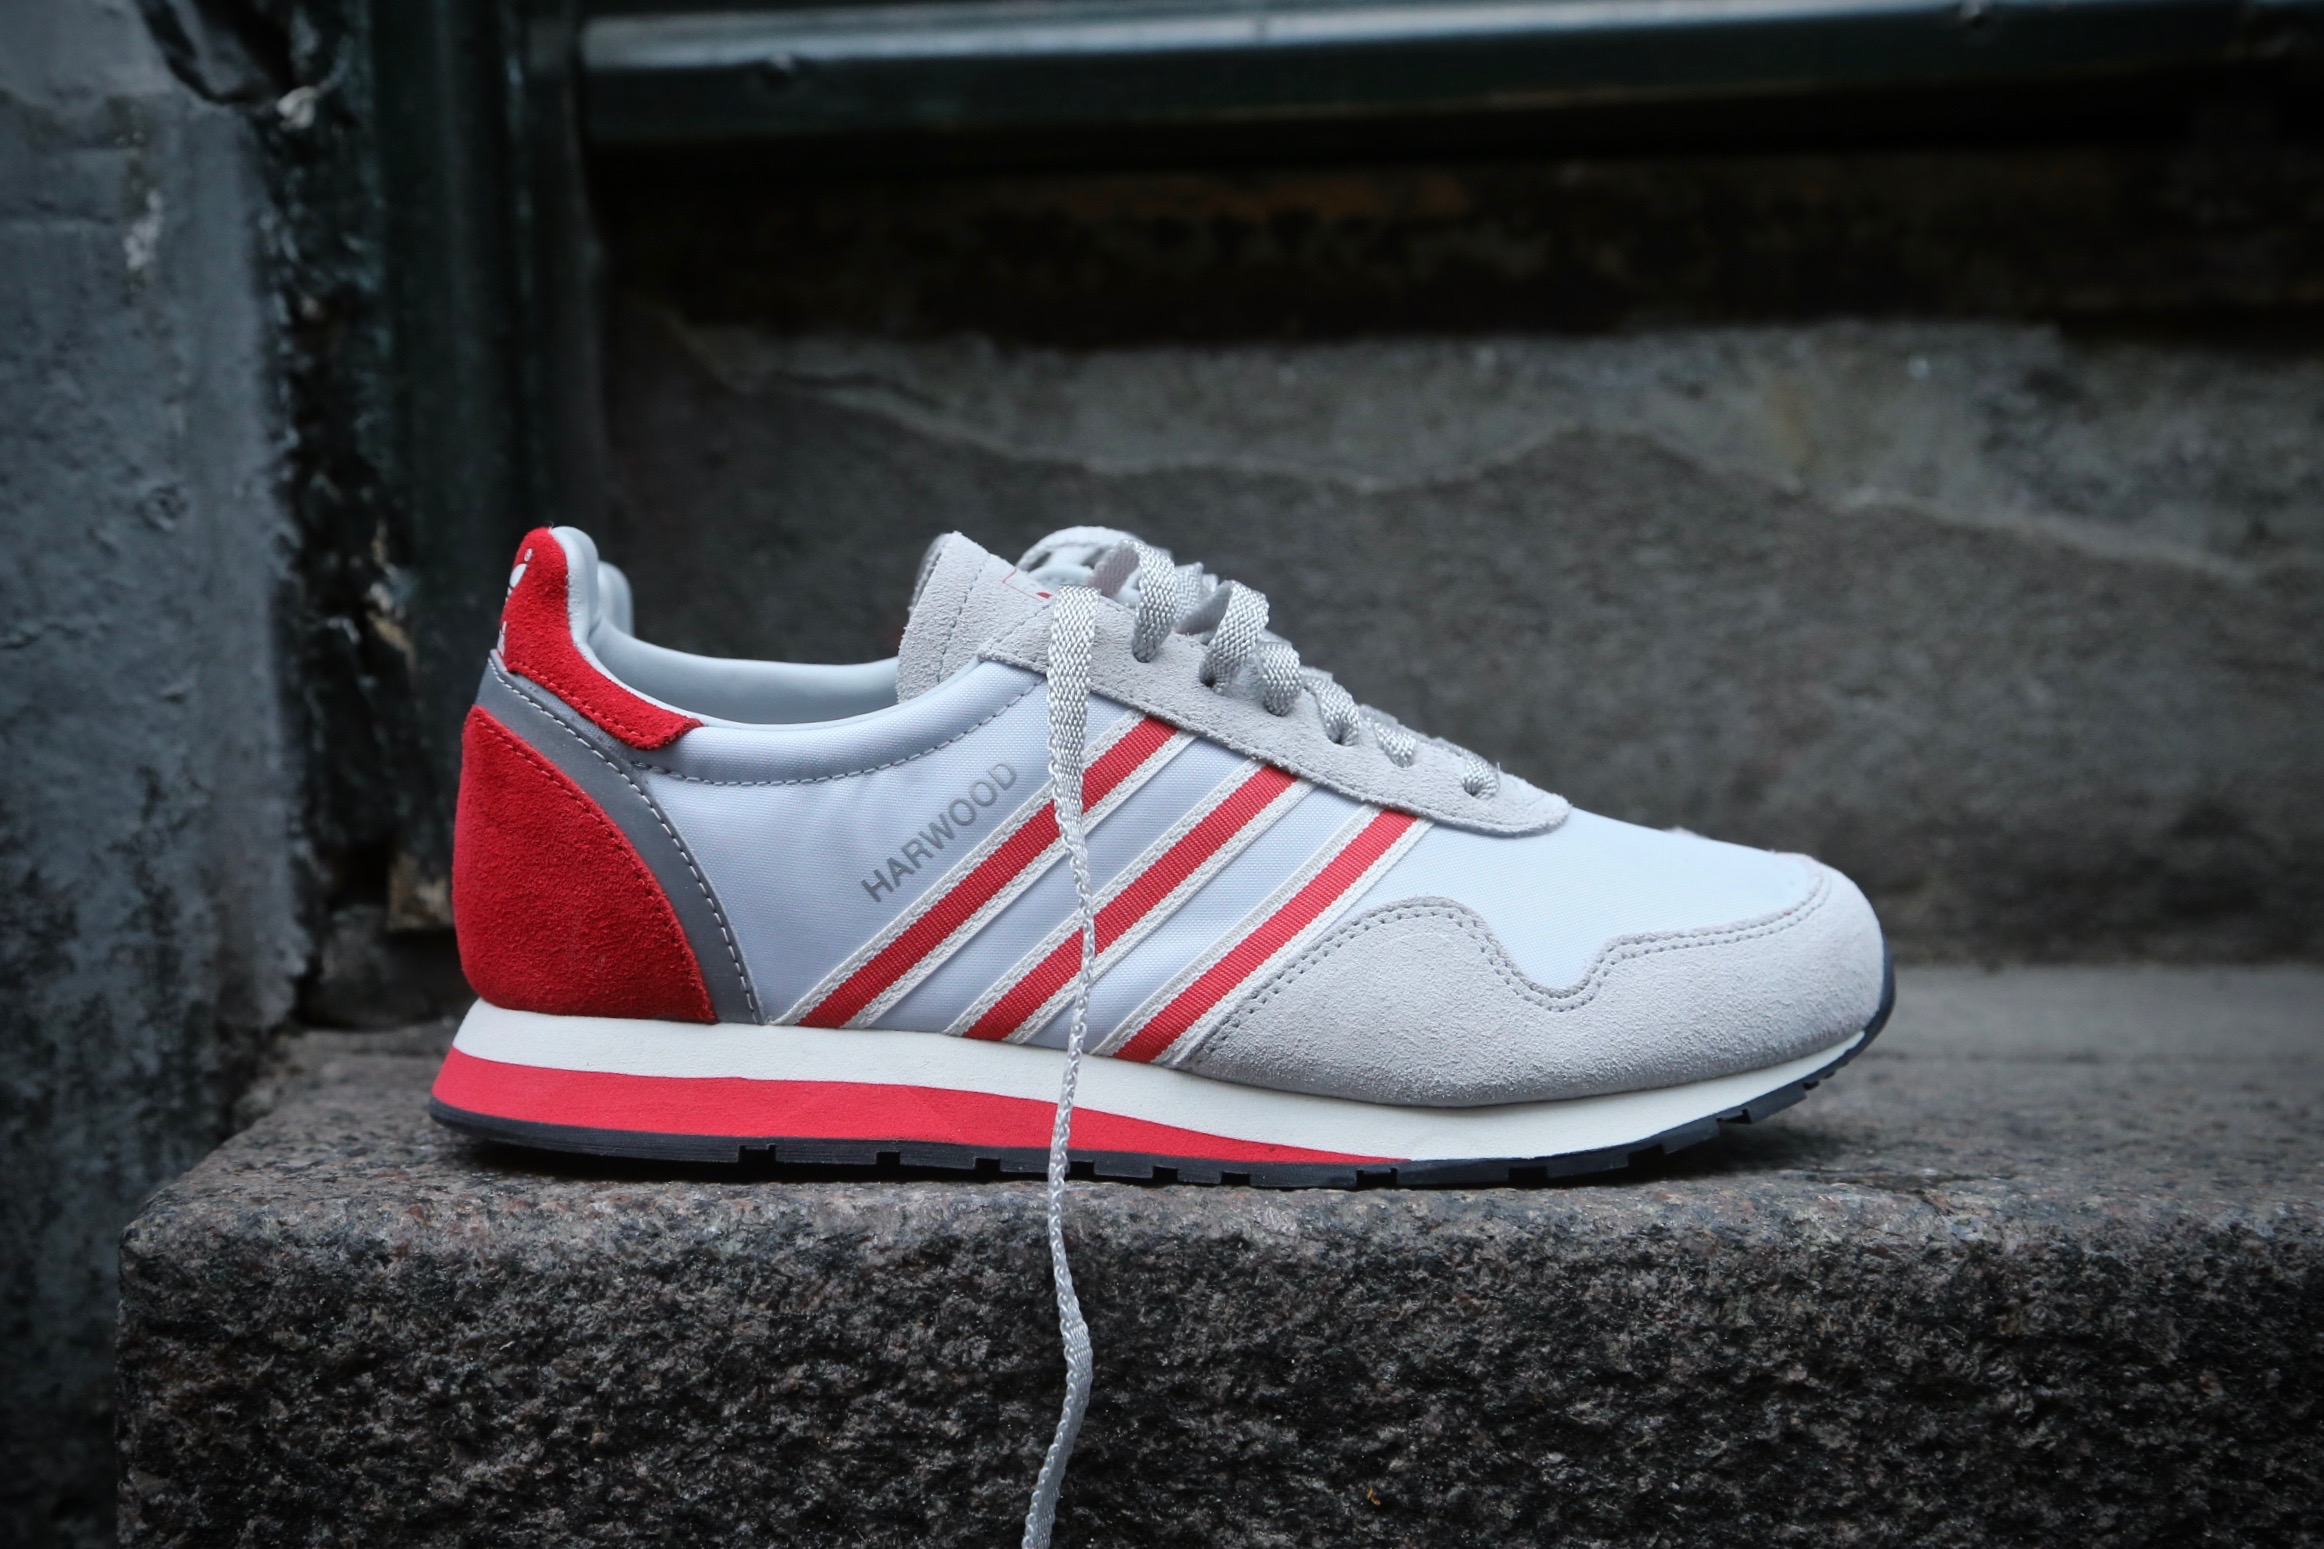 new style 9ab59 aa550 adidas Originals Harwood SPZL – Clear Grey  Ray Red – STASP